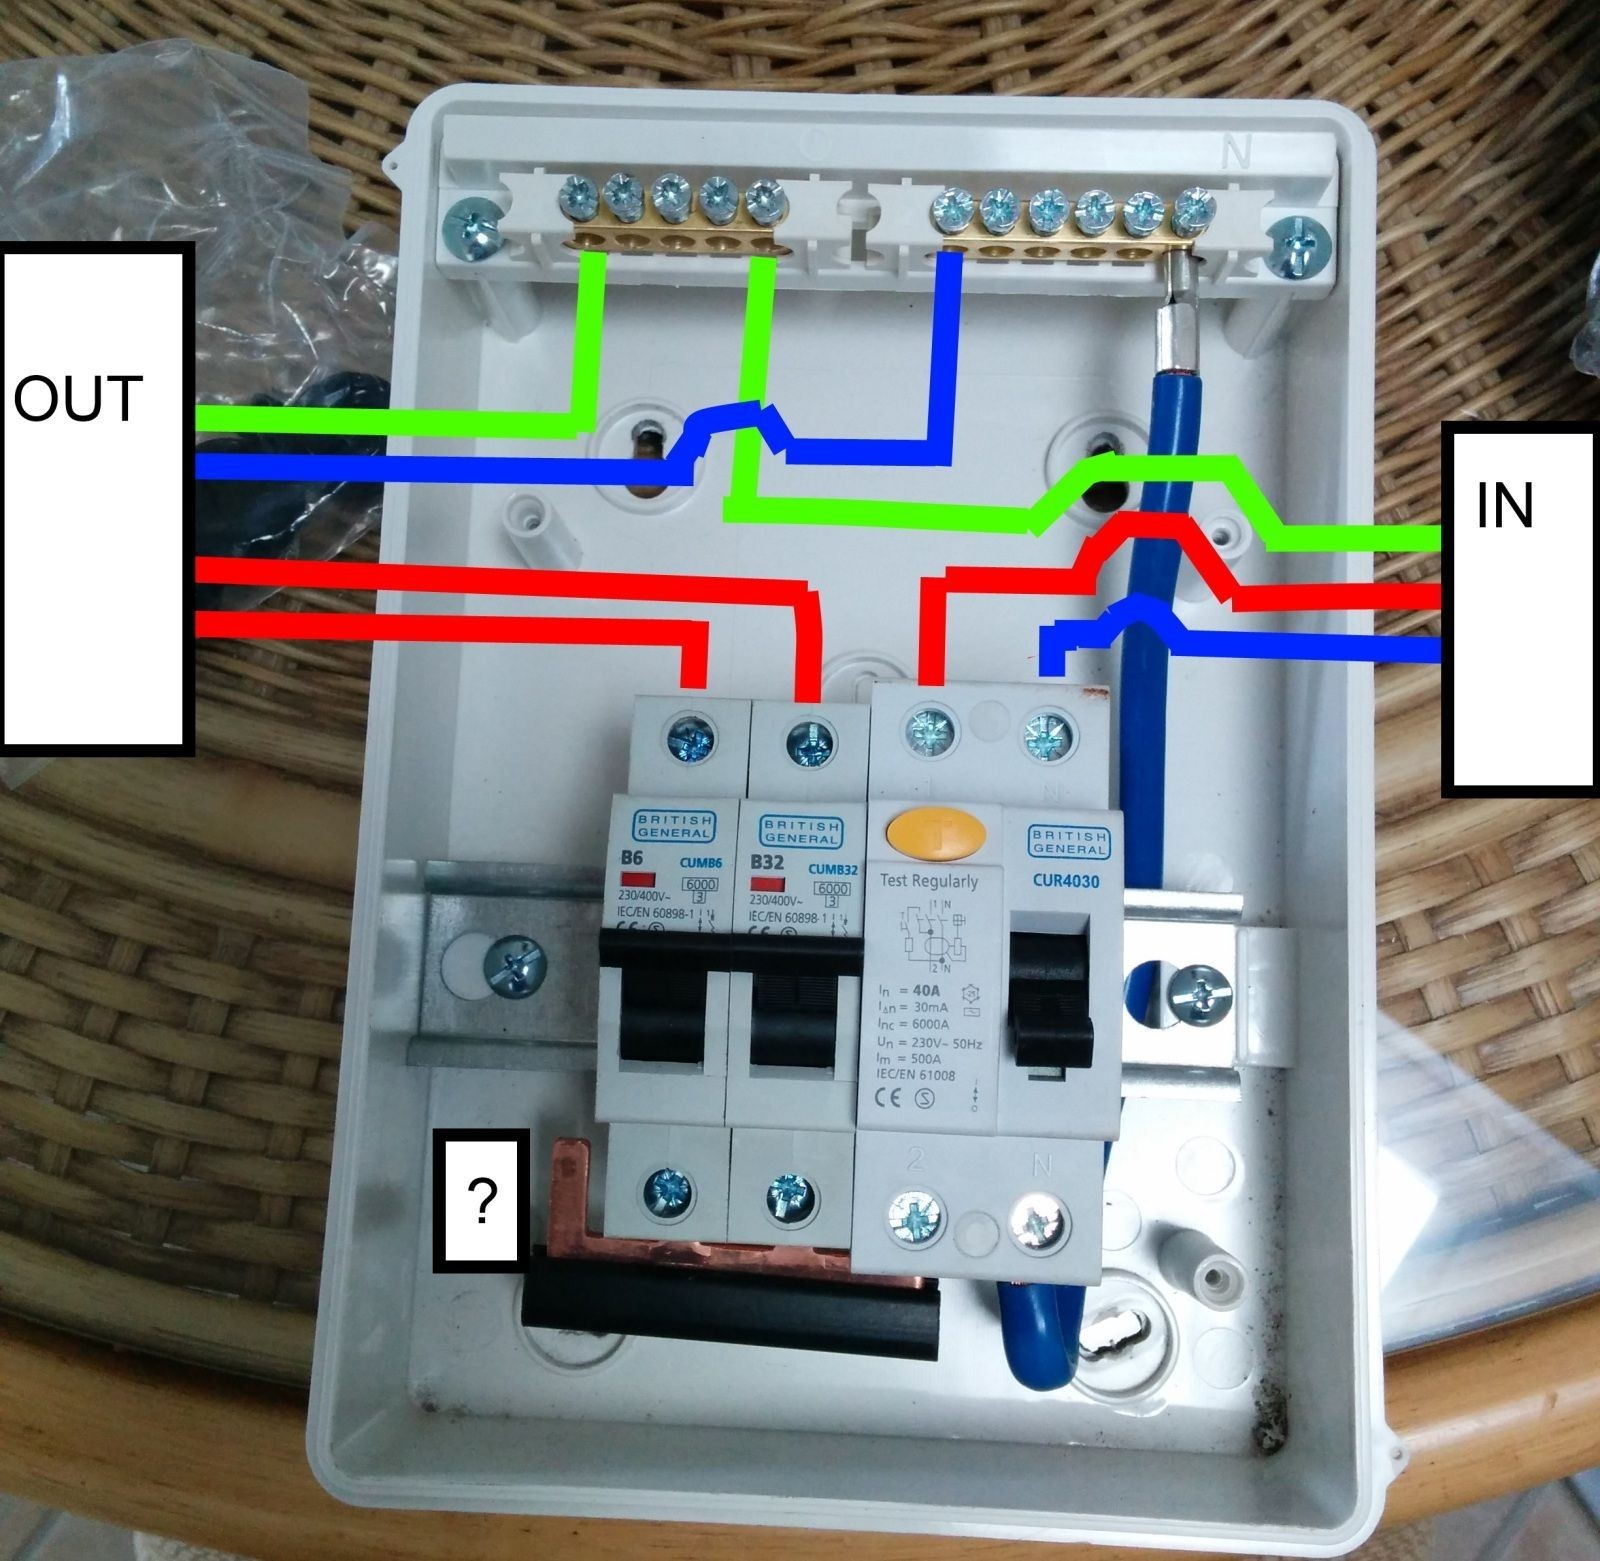 Magnificent Caravan Rcd Wiring Diagram Number 1 Wiring Diagram Site Wiring Cloud Staixaidewilluminateatxorg